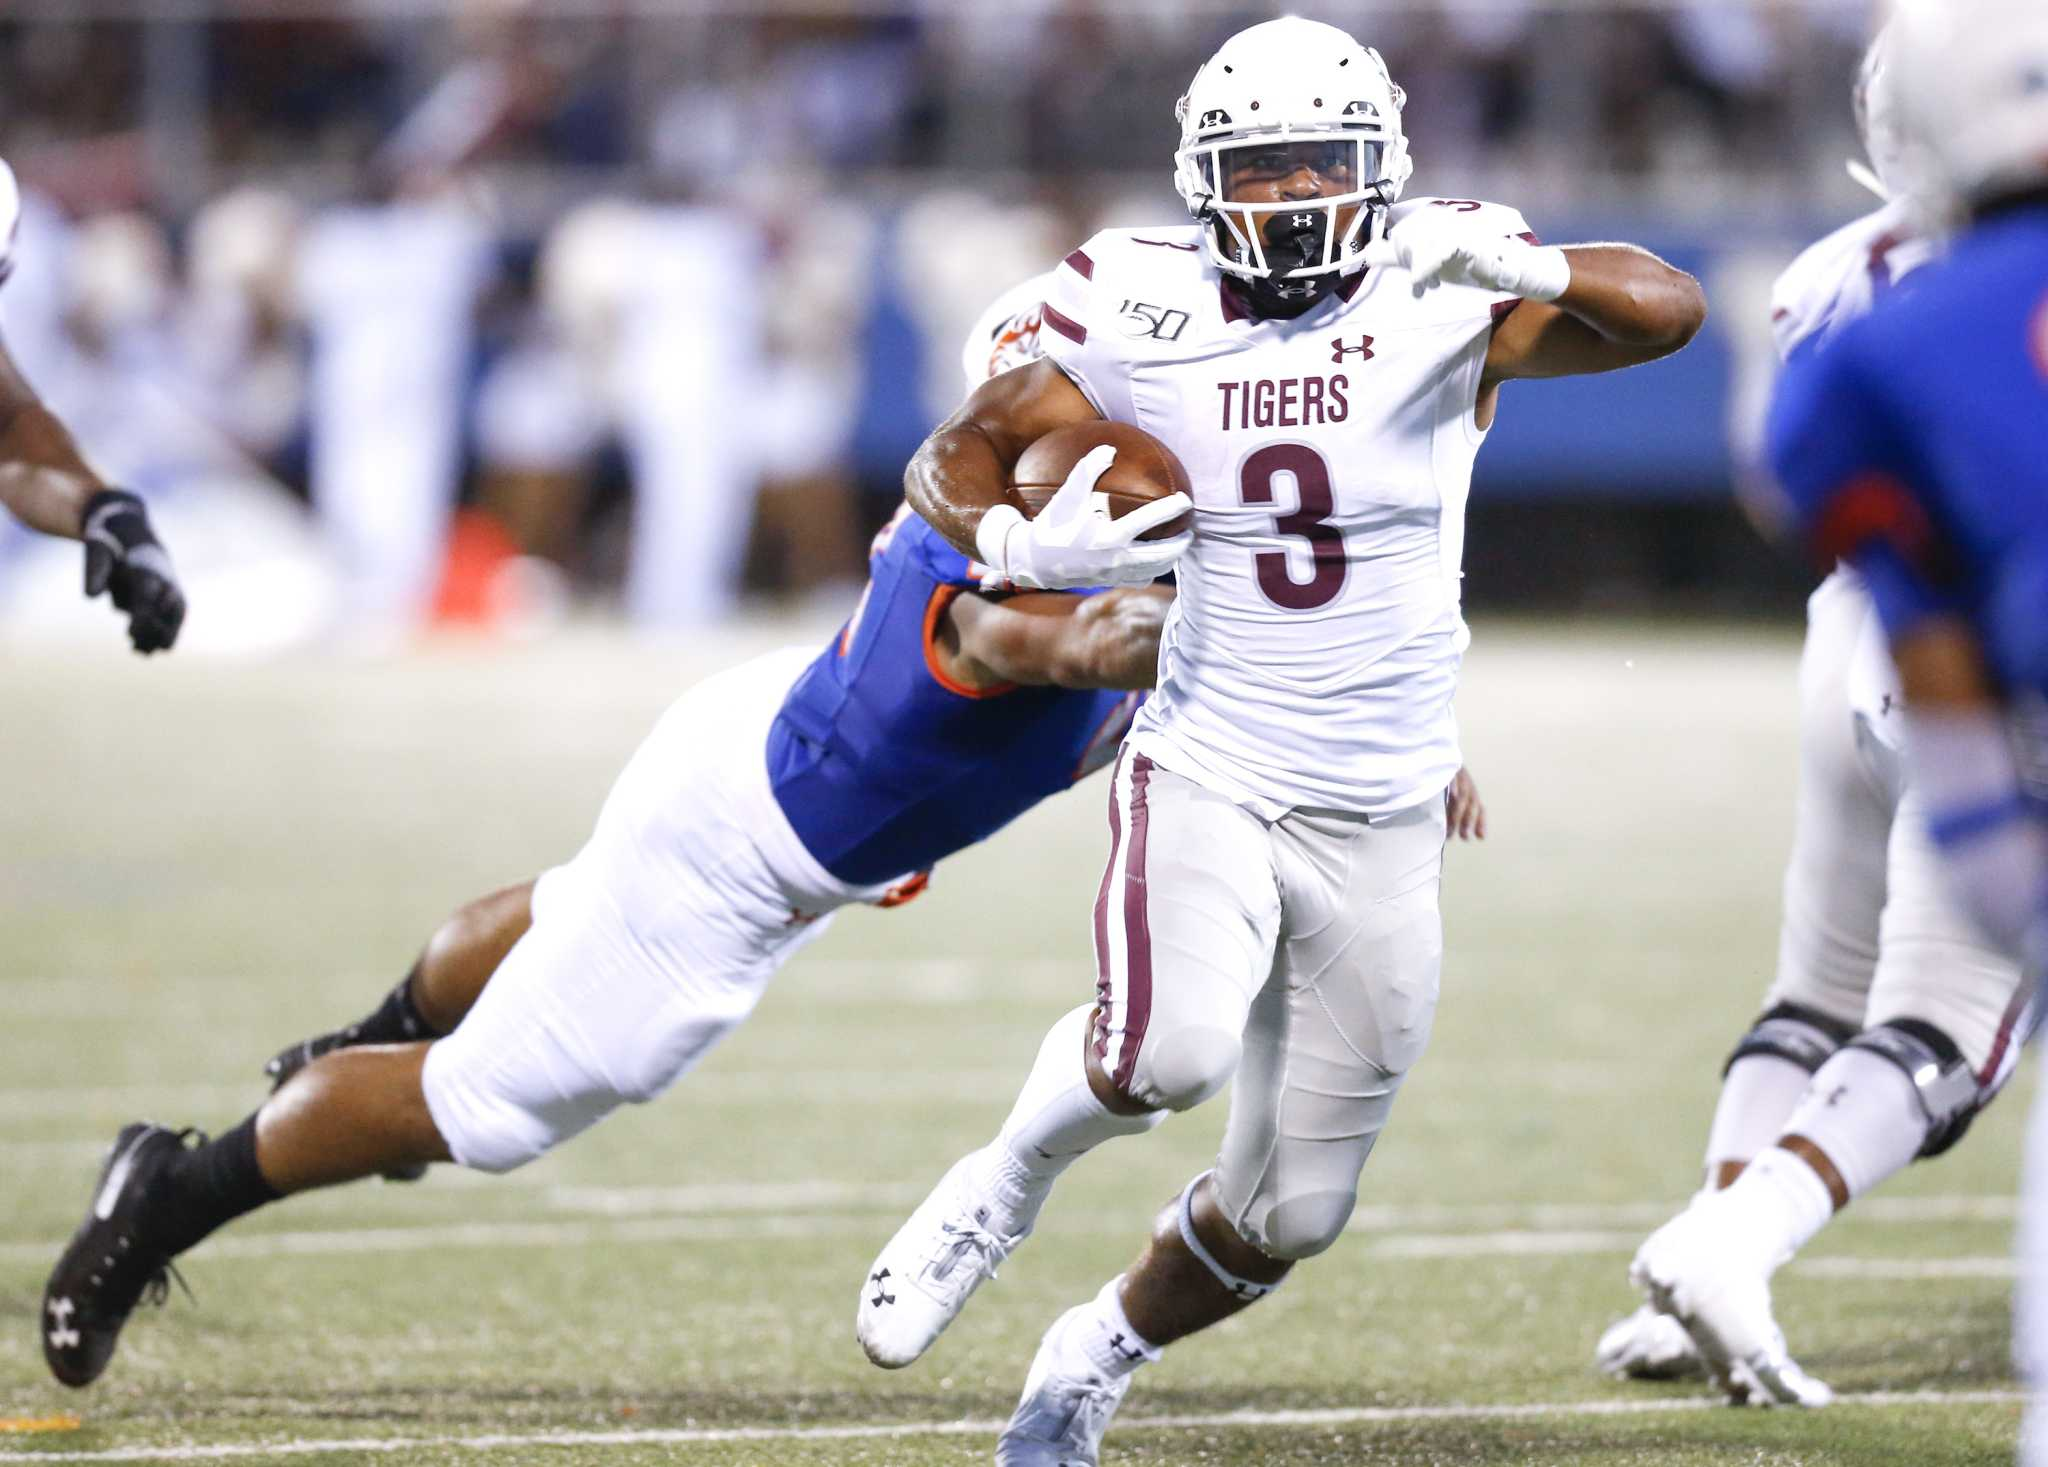 College football preview: Texas Southern vs. Southern